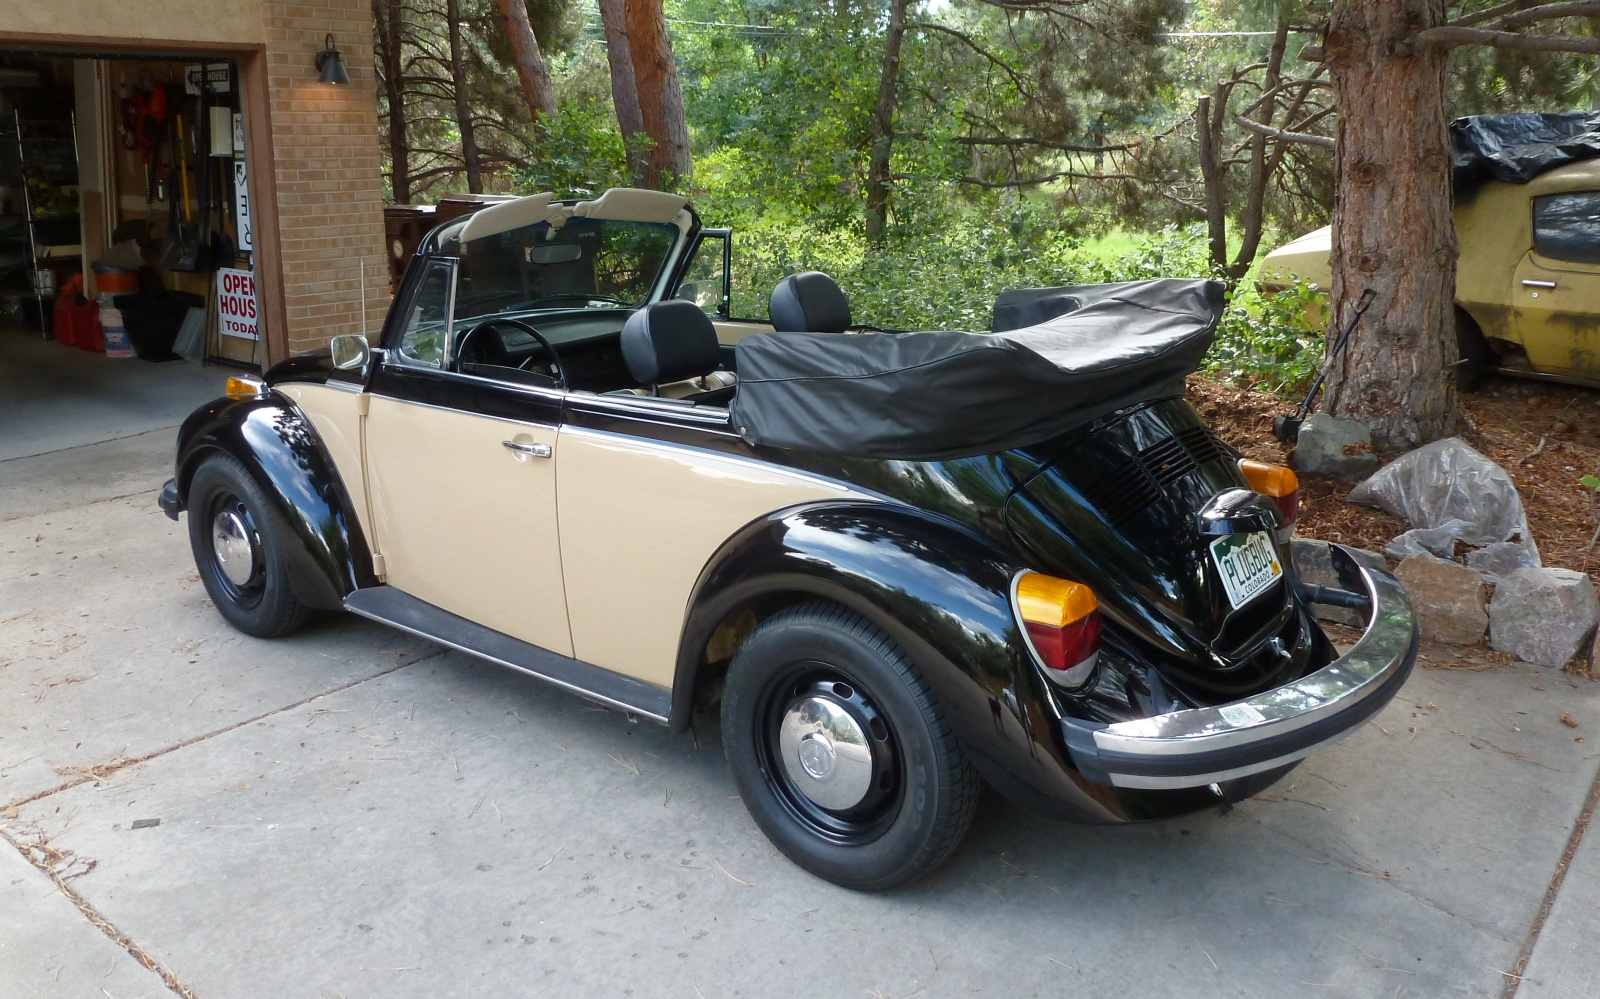 """This Volkswagen looks like a Volkswagen, but does not make that """"lawnmower"""" engine noise of a Volkswagen. It's electric and silent. (Picture courtesy barnfinds.com)."""